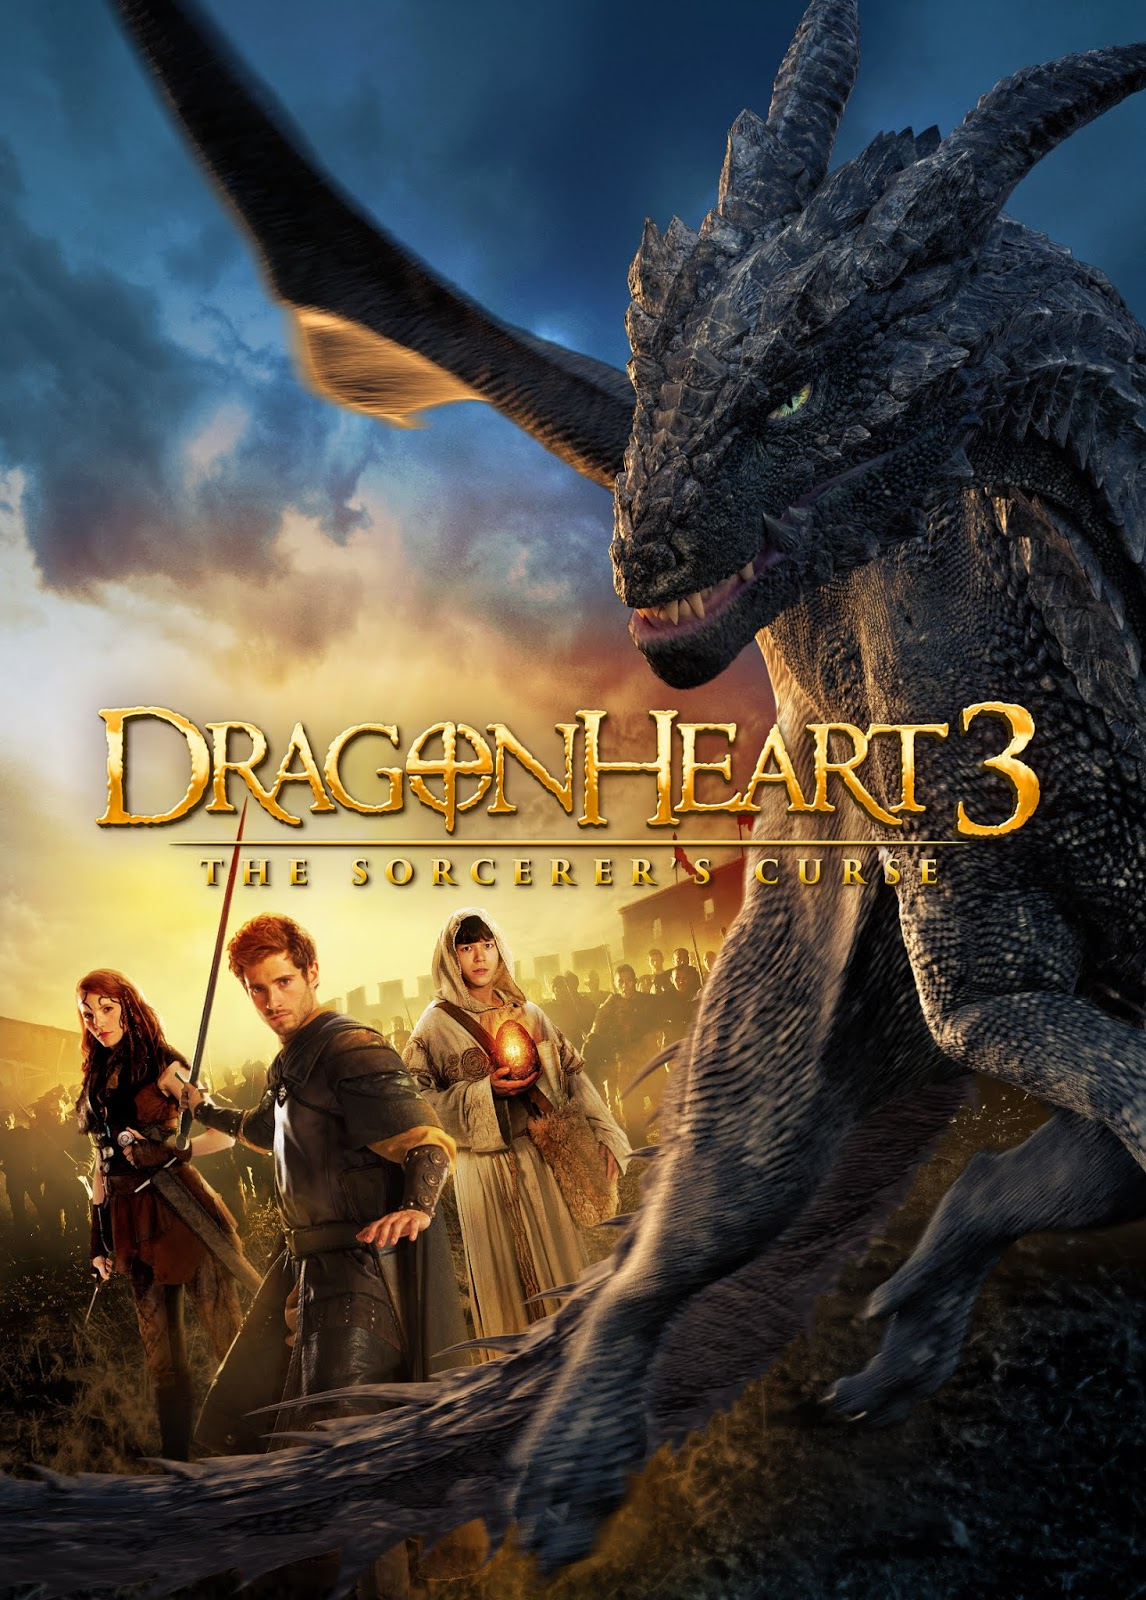 Dragonheart 3: The Sorcerer's Curse [2015] [DVDR] [NTSC] [Latino]